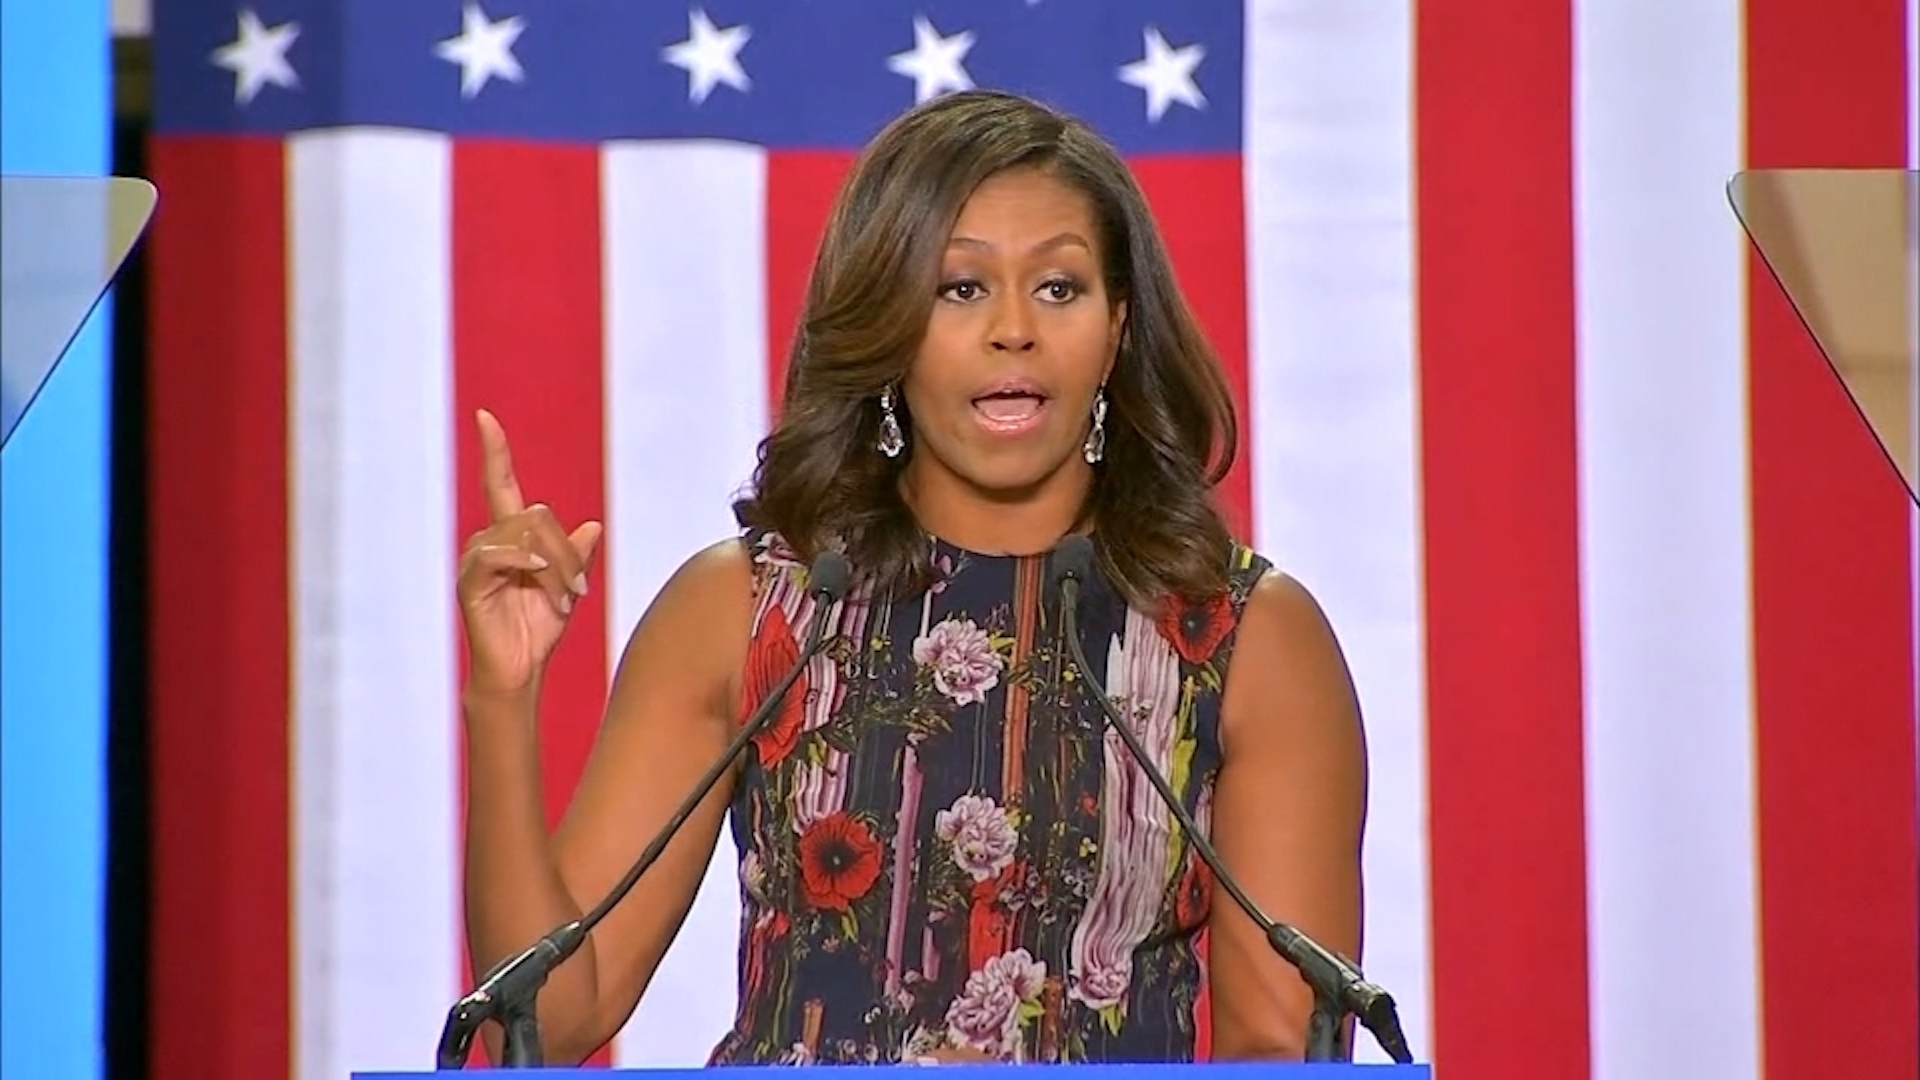 Michelle Obama's new book is candid and revealing - The Washington Post